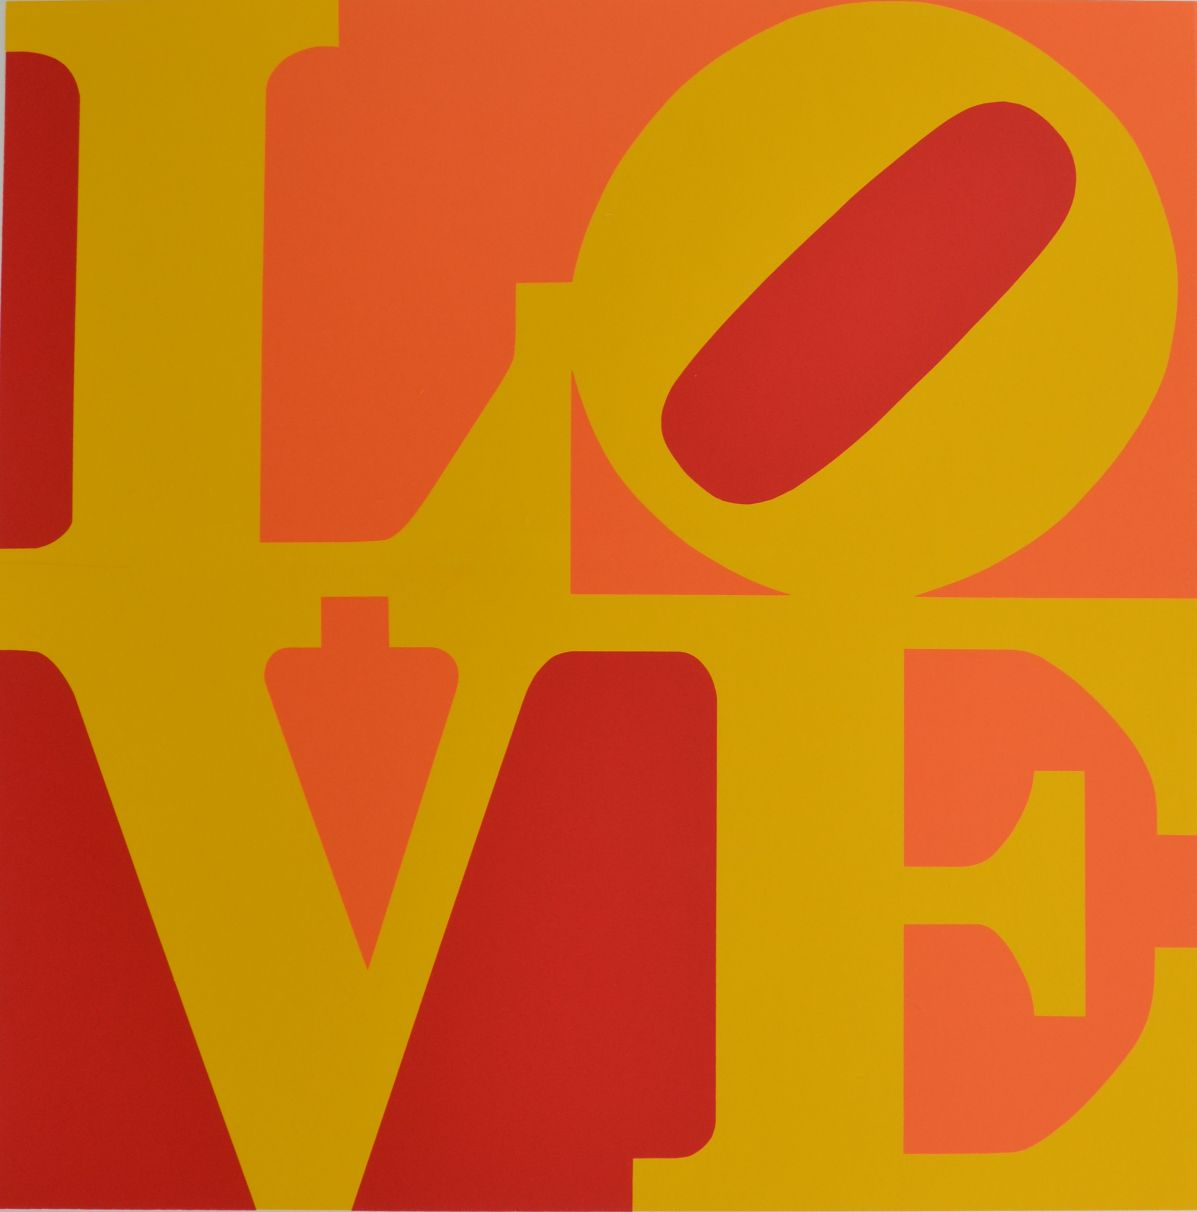 edition print by Robert Indiana titled book of love #10 (red, orange, and yellow - french love)